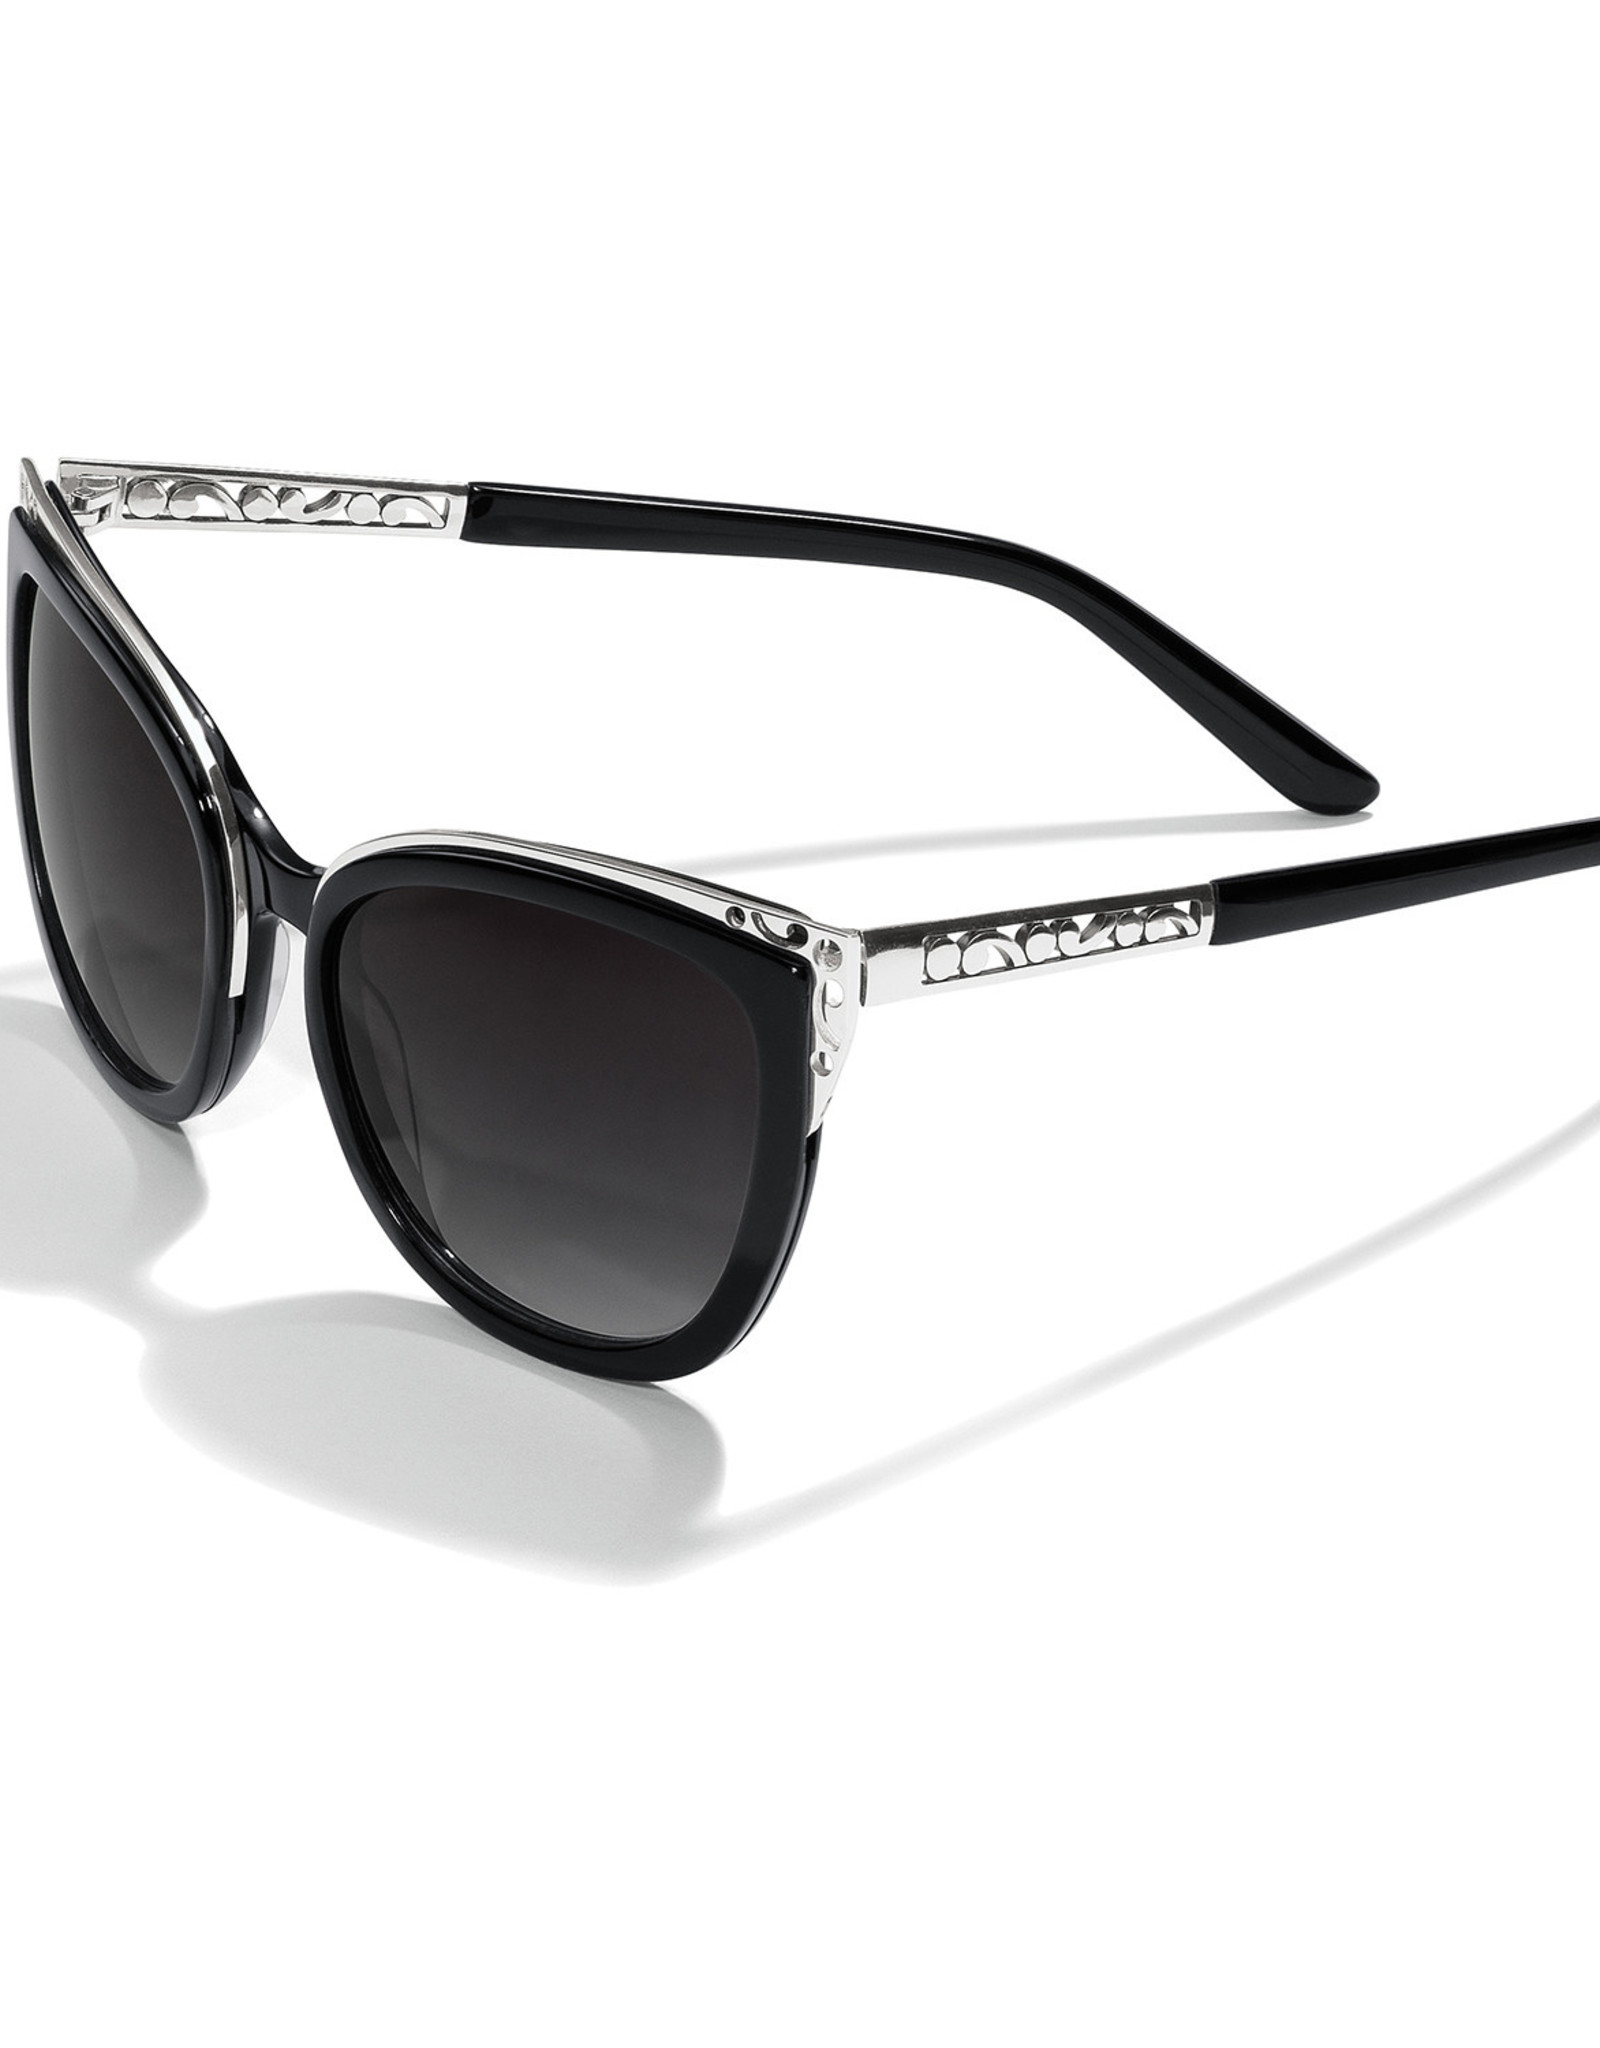 Brighton Brighton Sunglasses Contempo Ice Sun Black/Silver